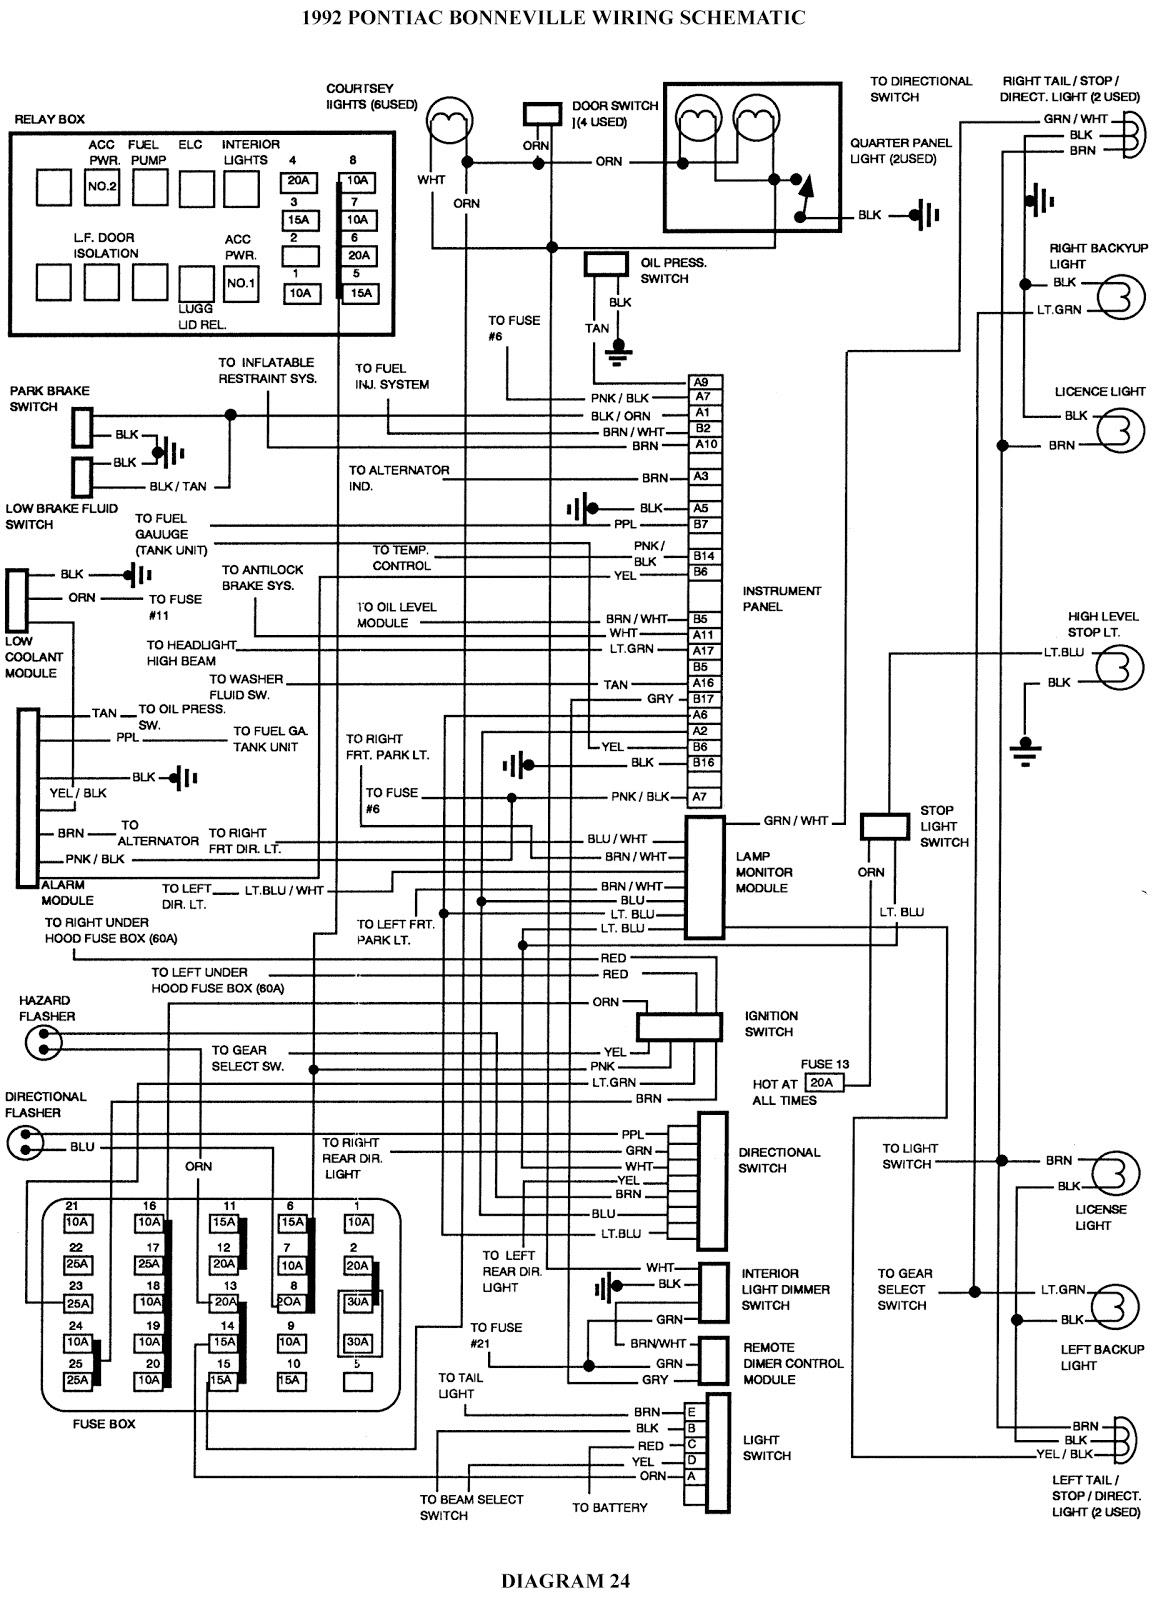 cts fuse diagram auto electrical wiring diagram1992 pontiac bonneville wiring schematic